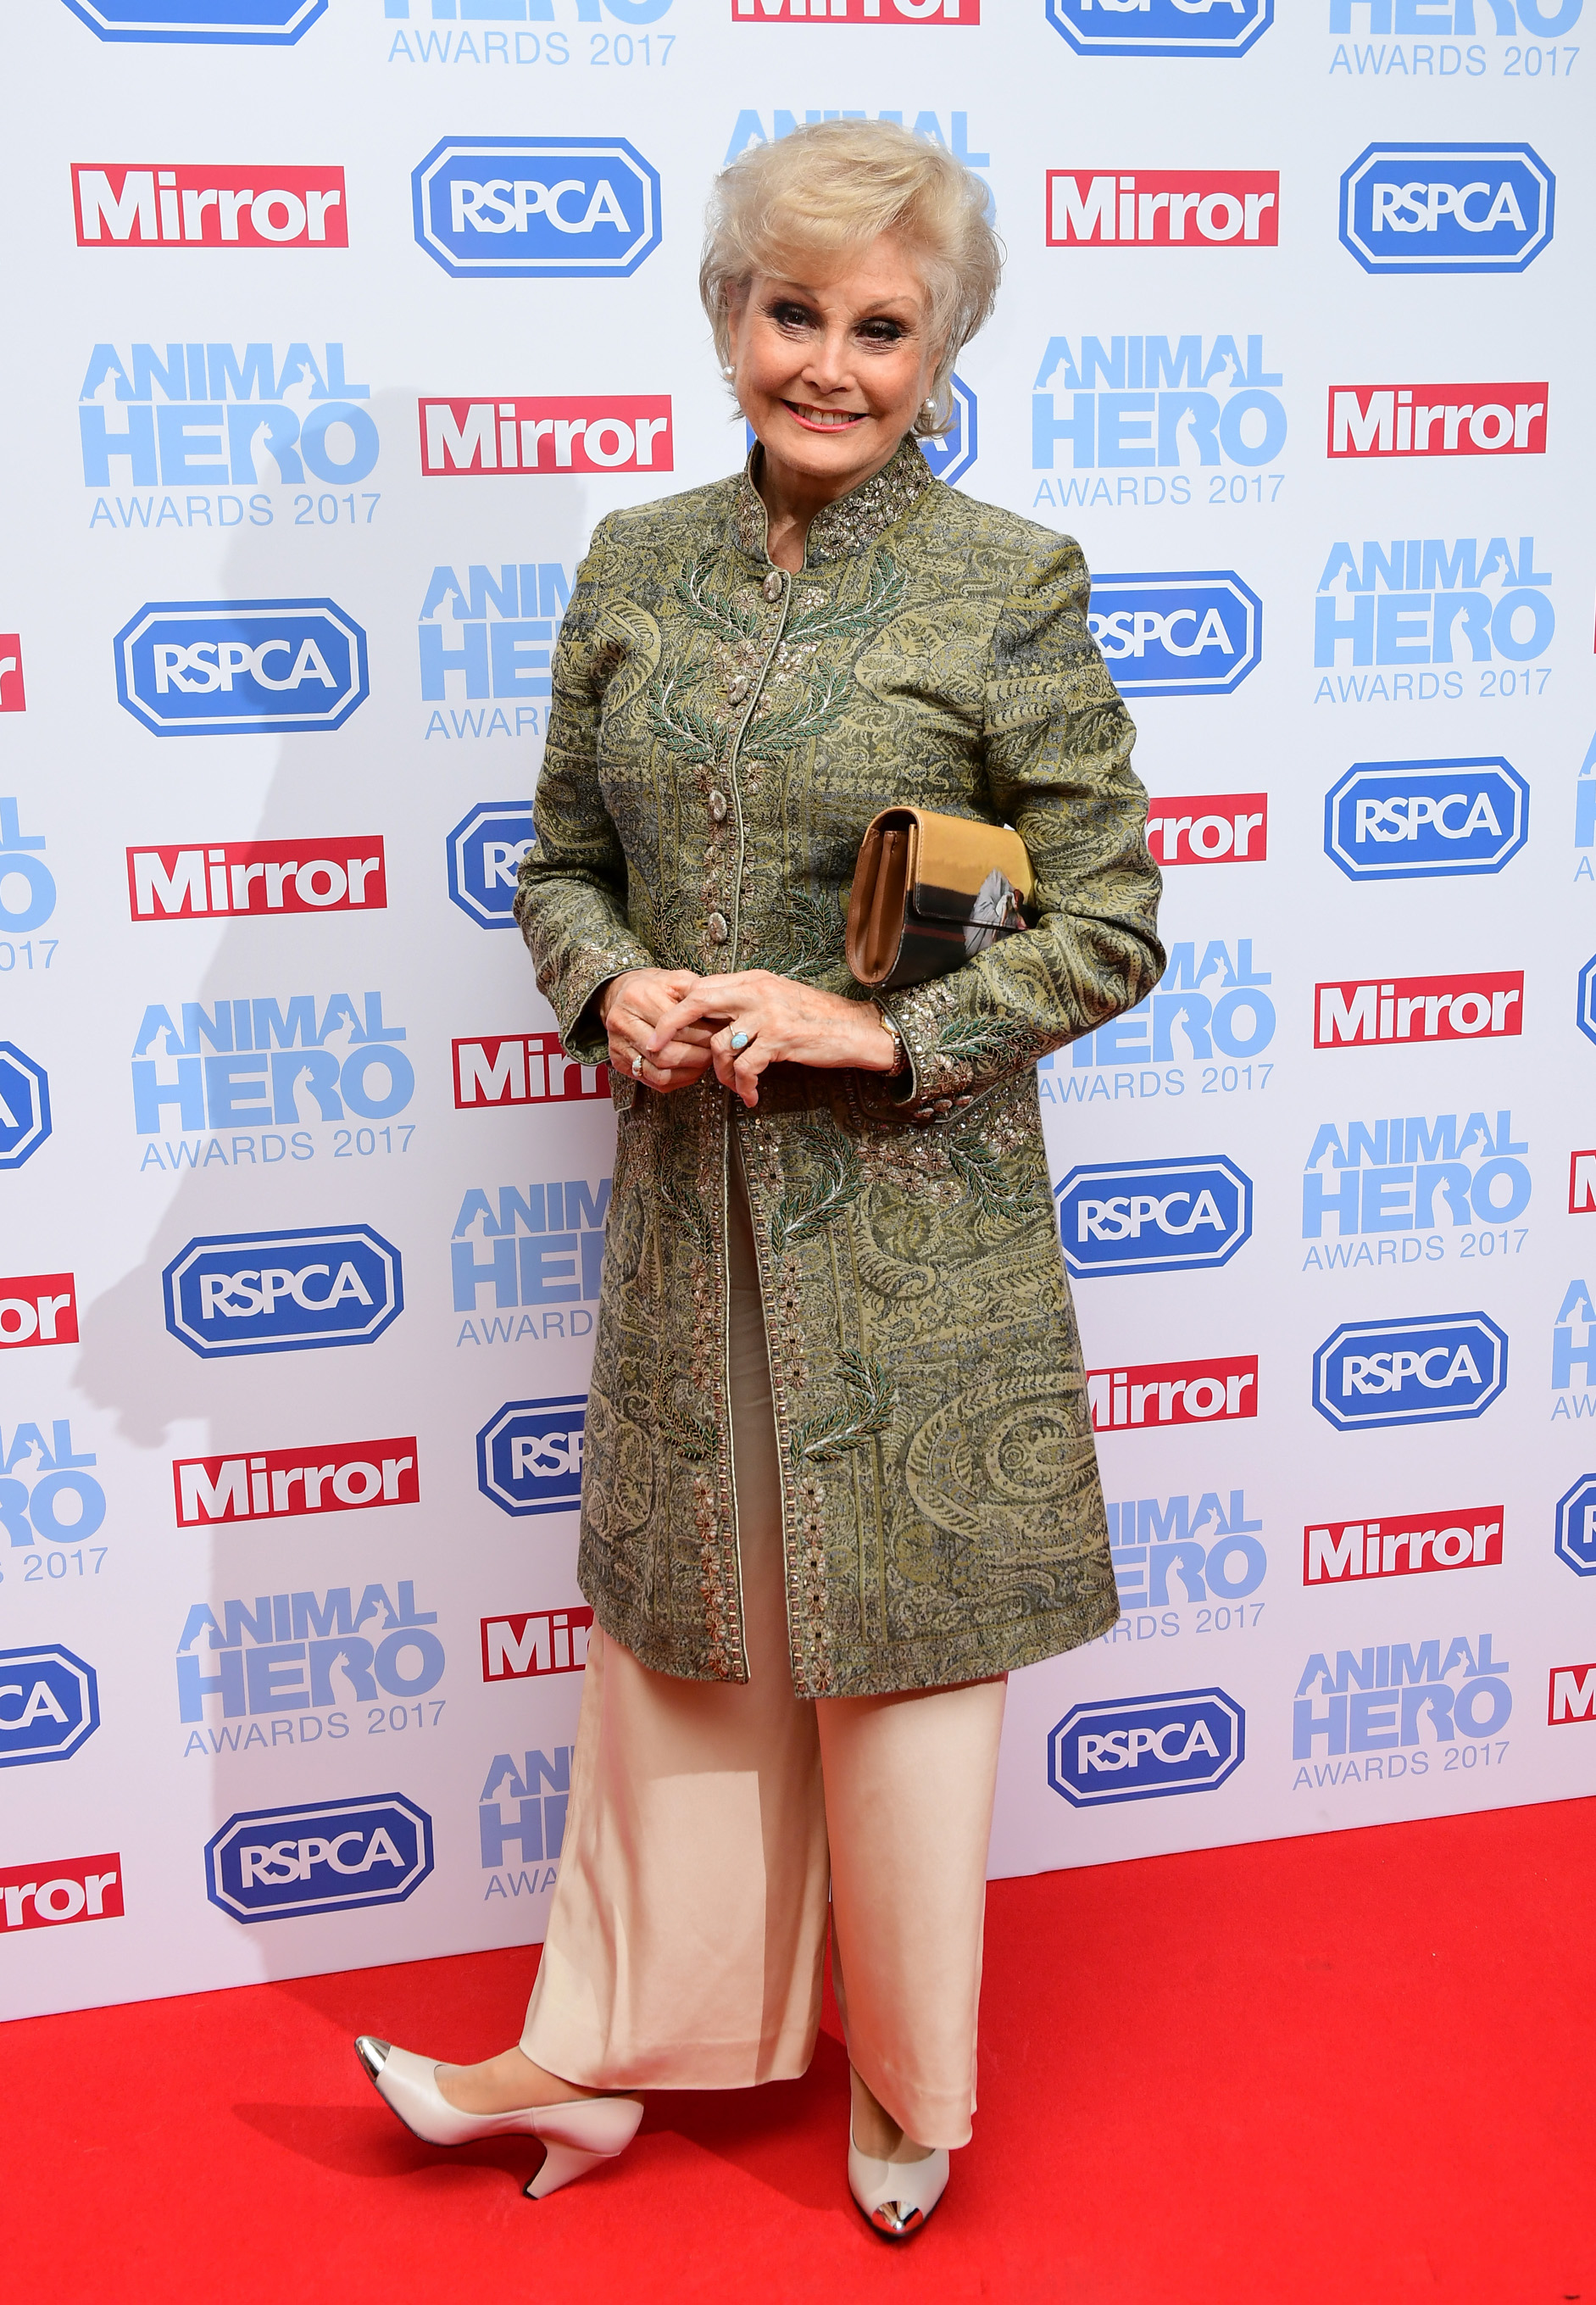 Angela Rippon attending The Animal Hero Awards held in London in September 2017. (Ian West/PA)